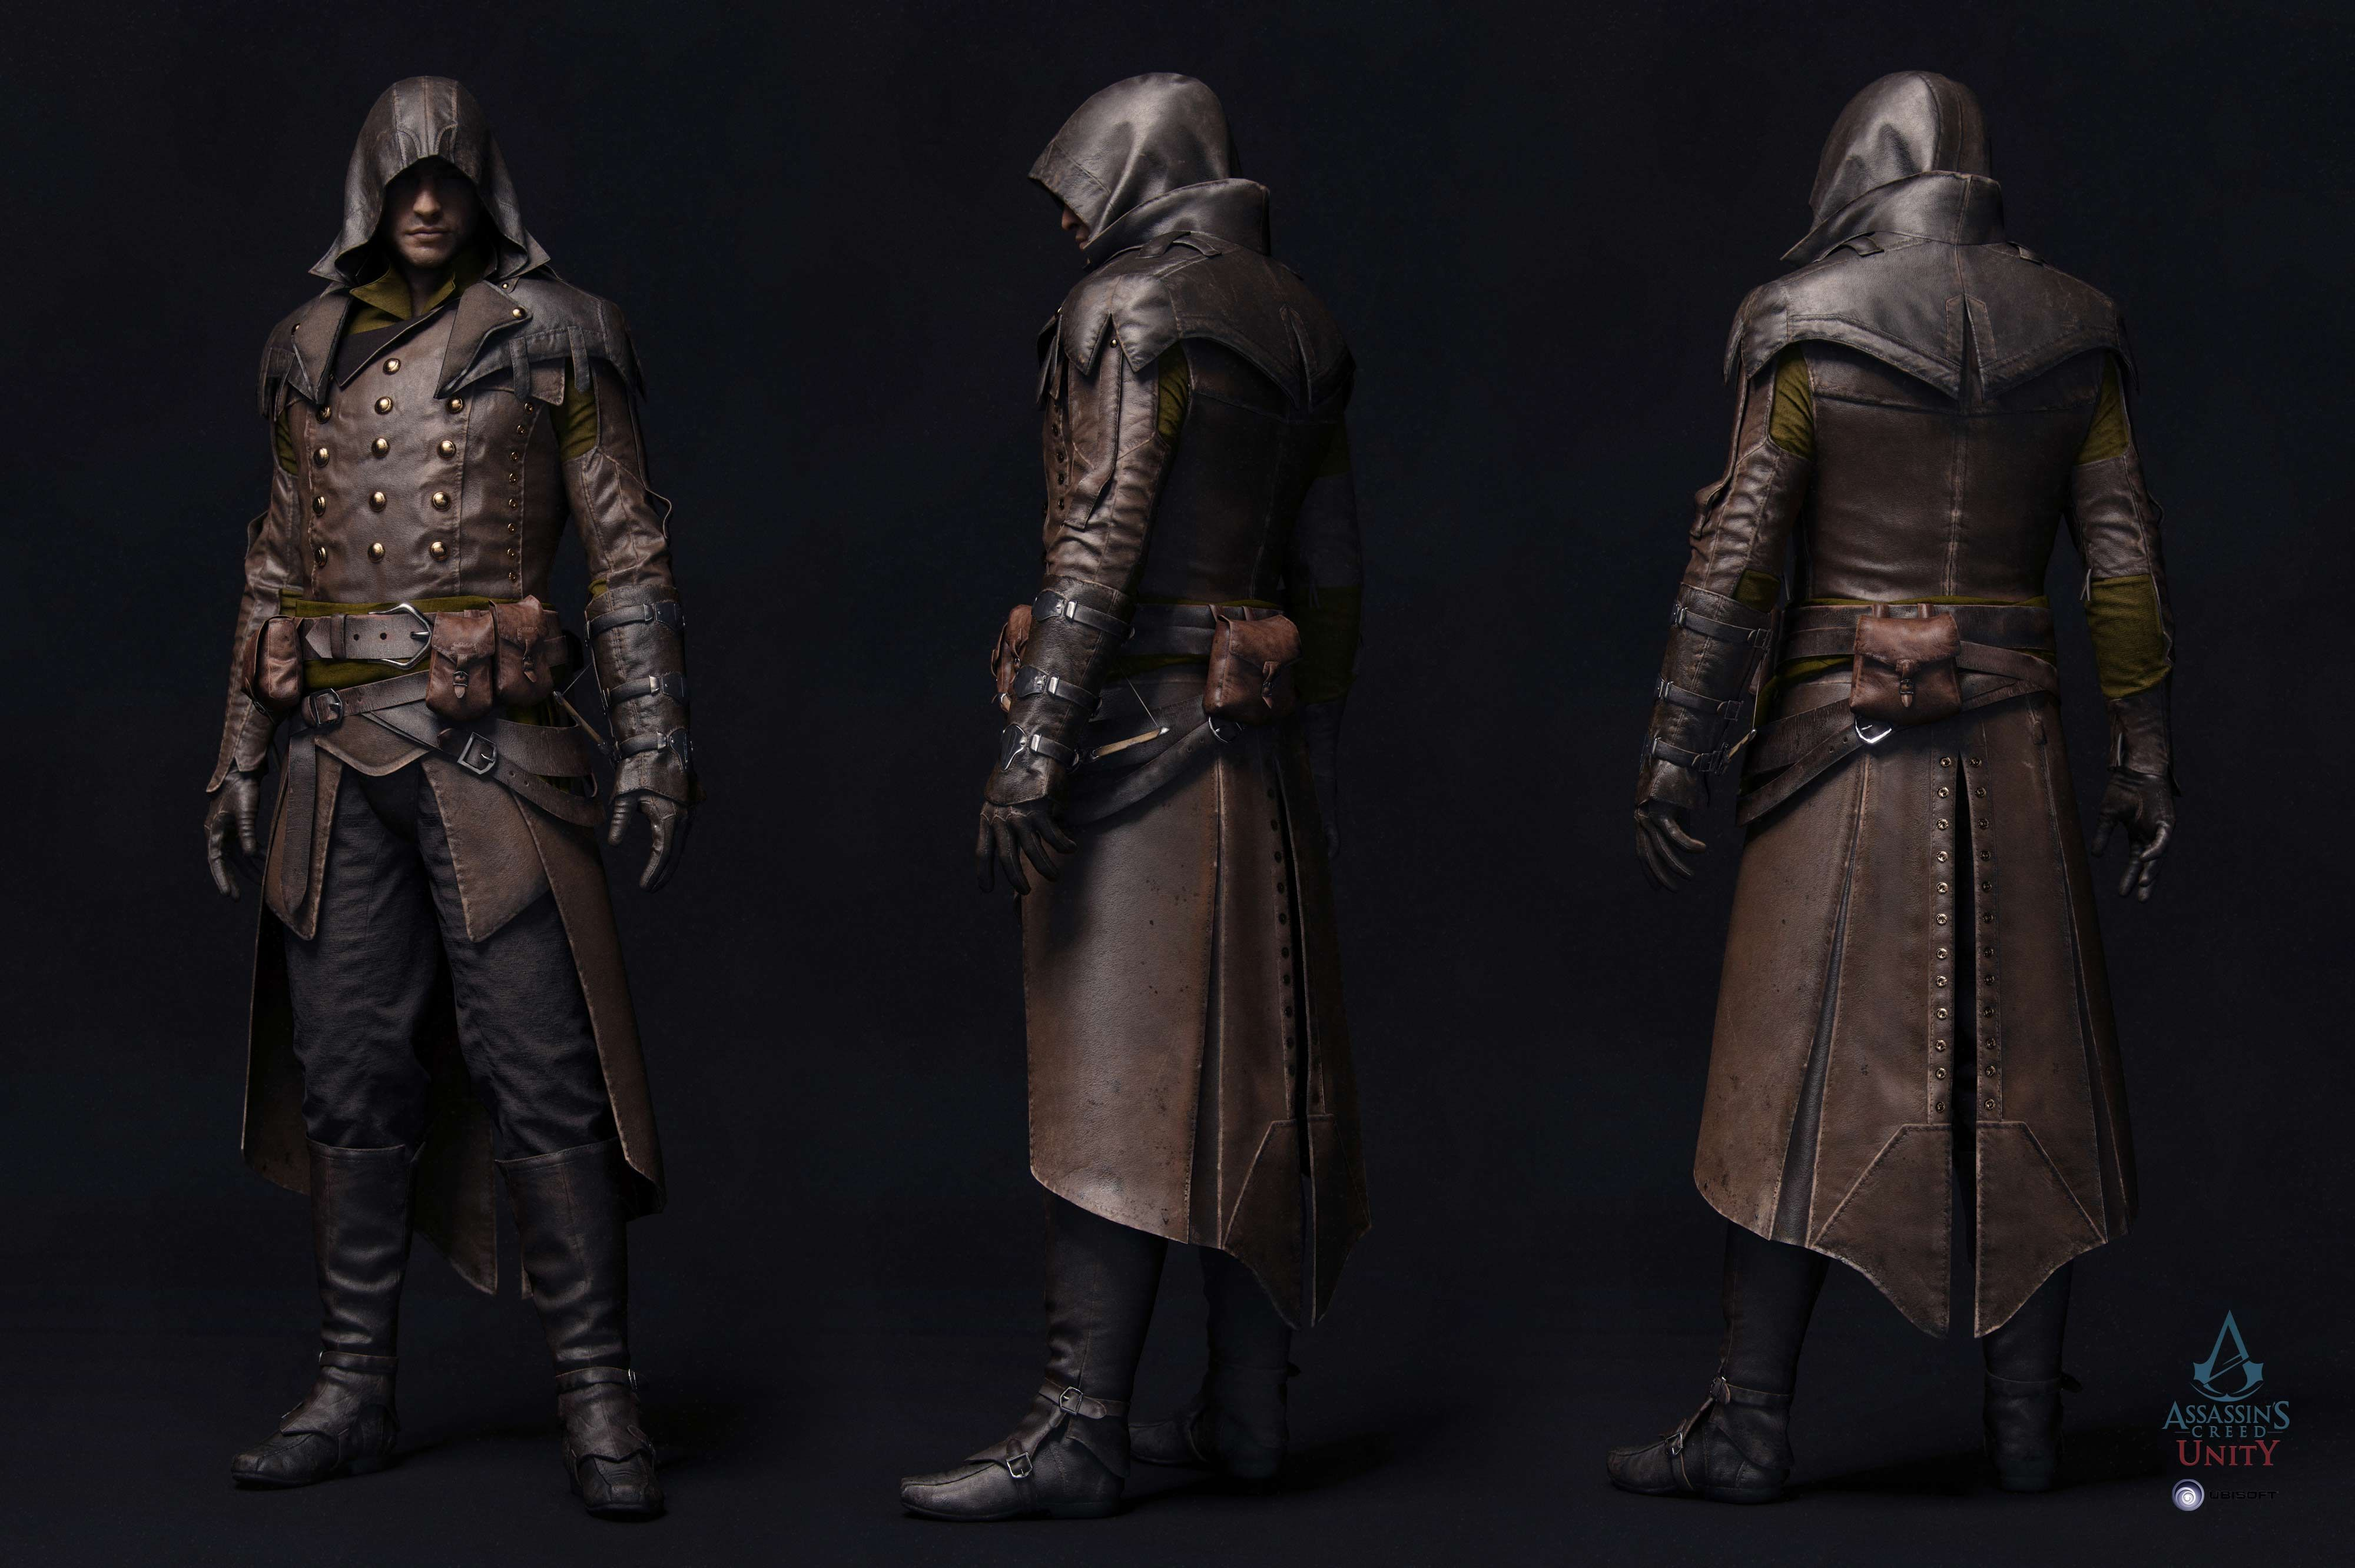 Http Www Zbrushcentral Com Showthread Php 190016 Assassin S